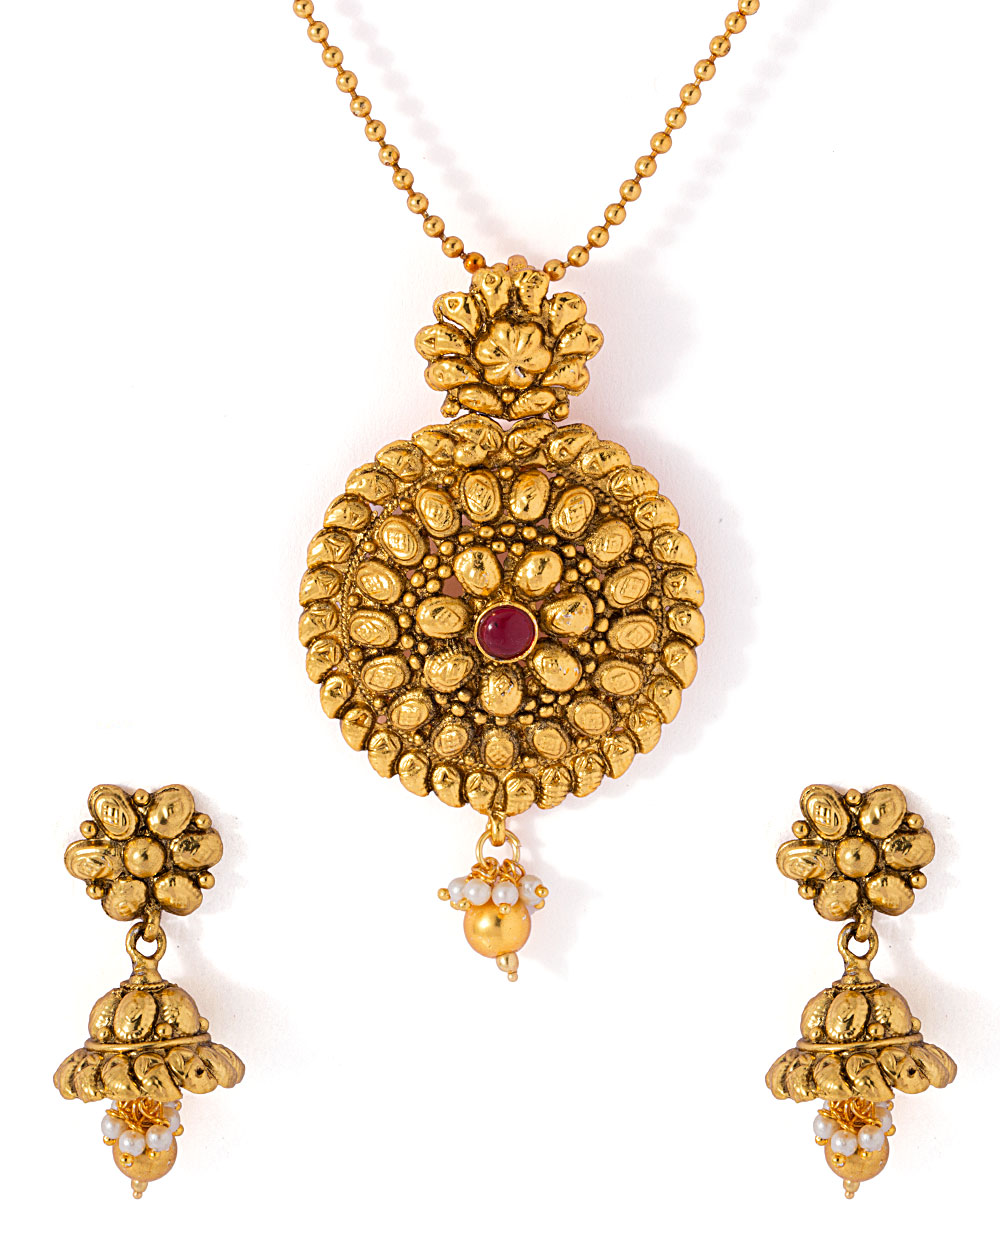 Buy gold tone traditional necklace set with red stone adornment gold tone traditional necklace set with red stone adornment aloadofball Images